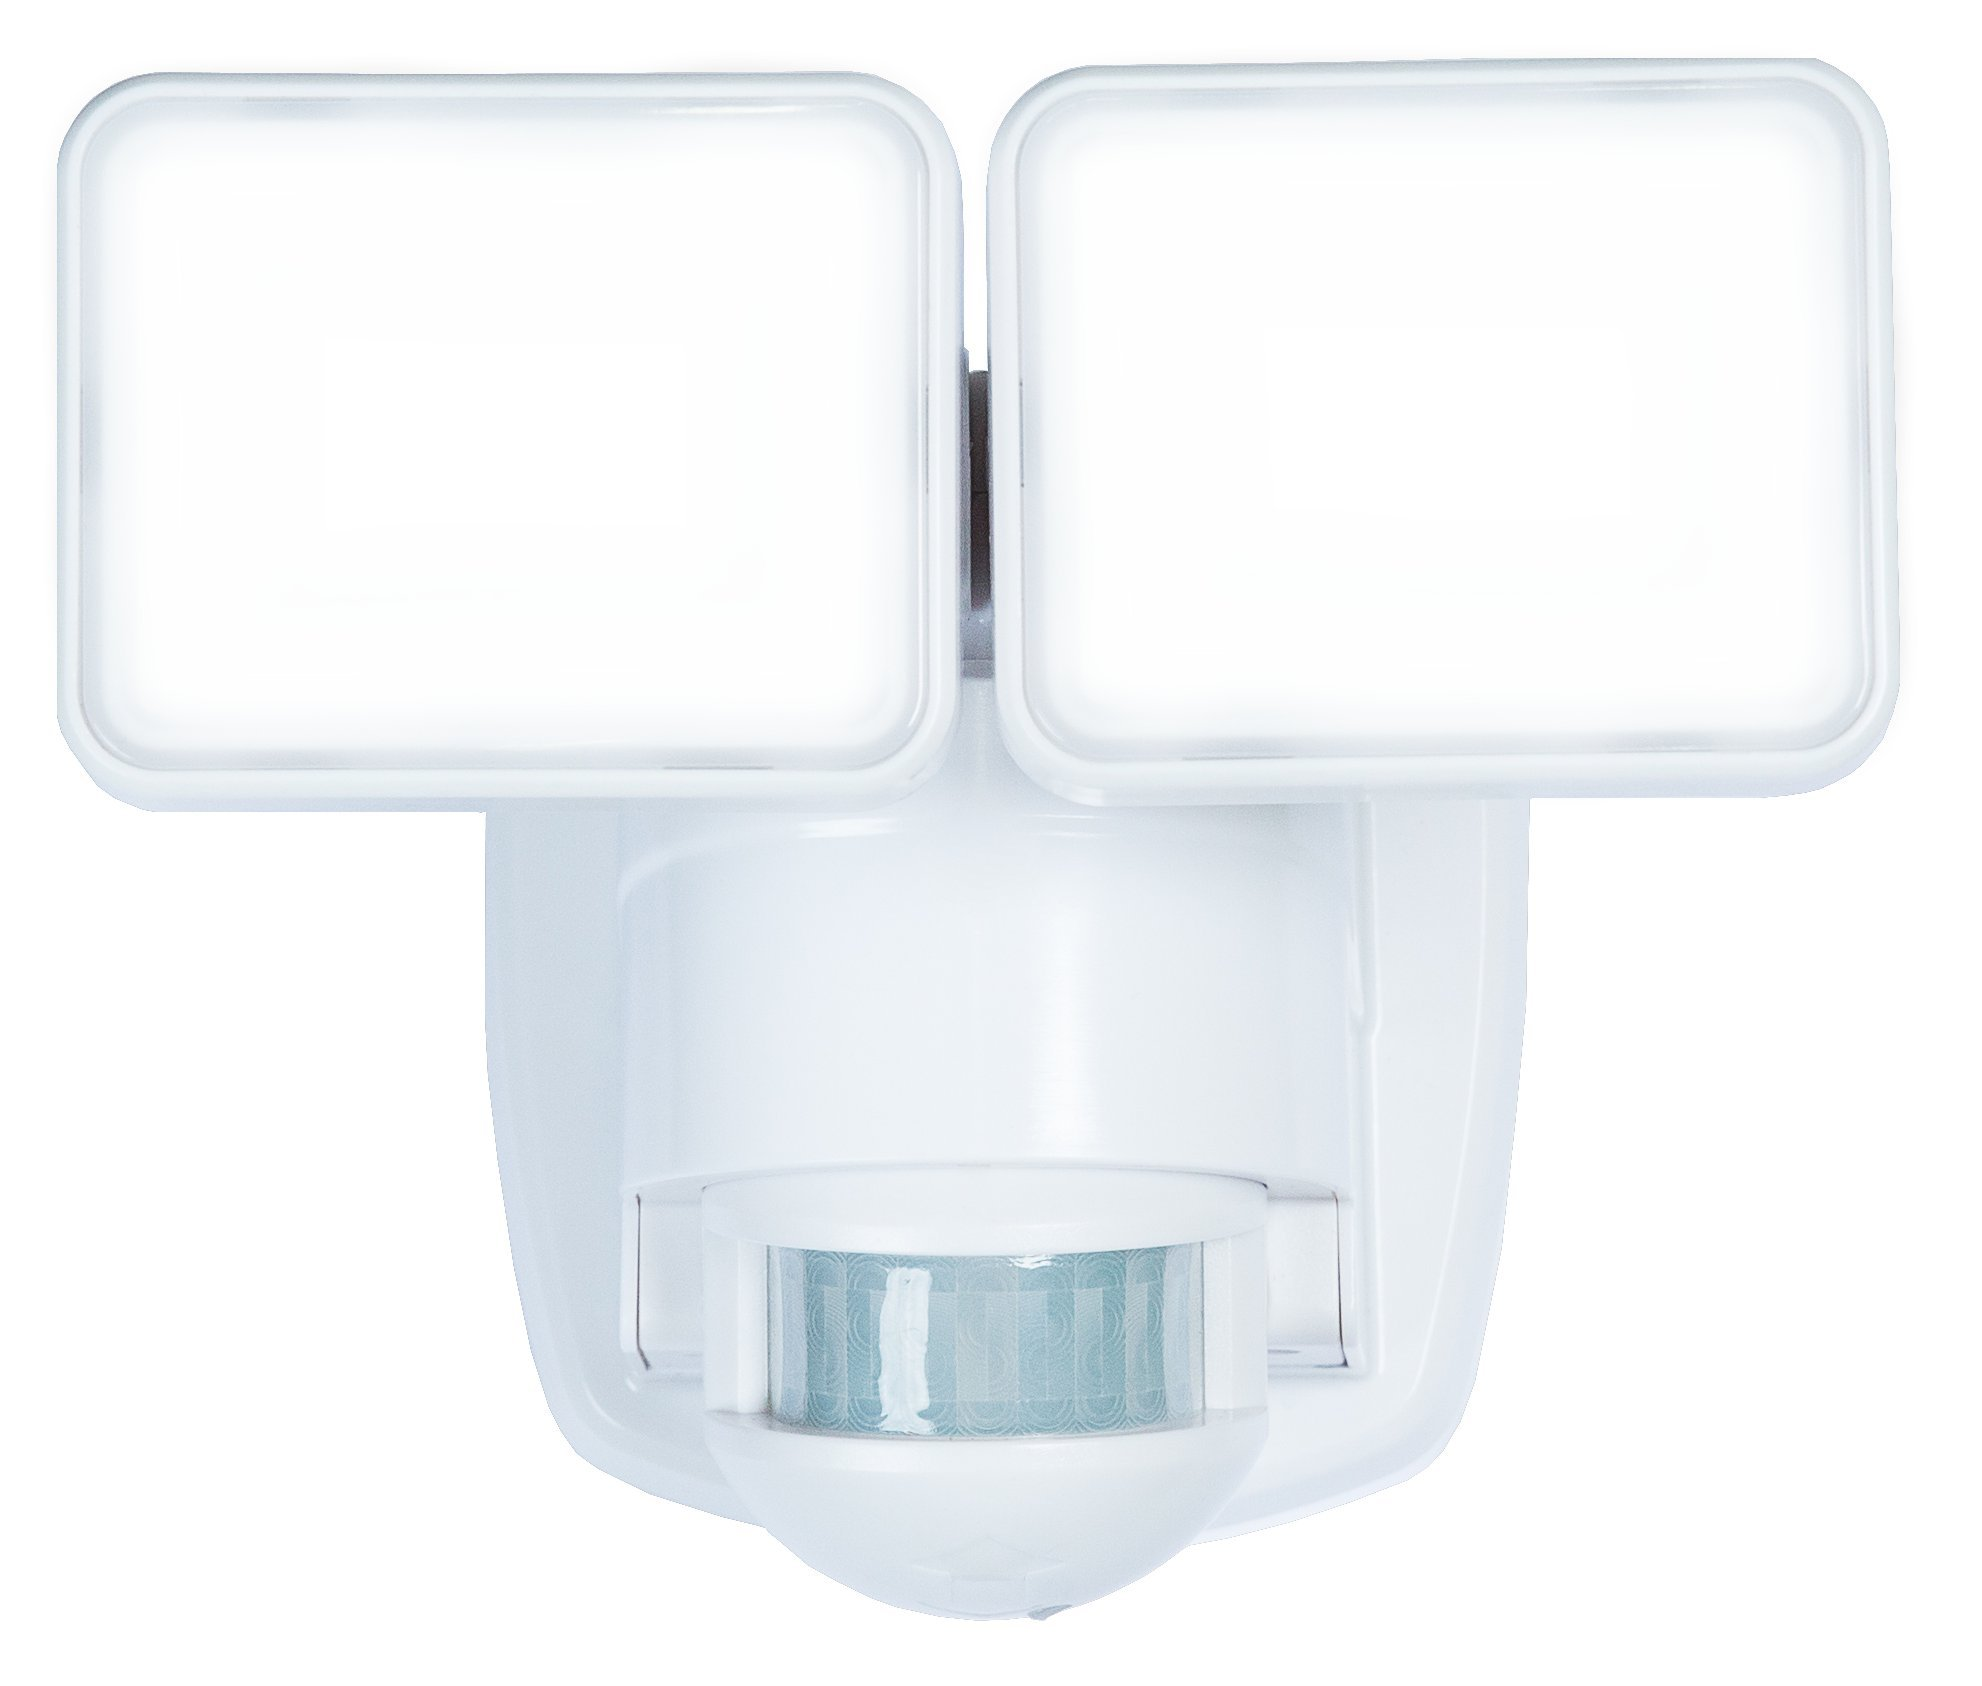 Heath Zenith HZ-5846-WH LED Motion Activated Security Light 1250 Lumen Output and 180 Degree Detection Zone up to 40 ft. , White